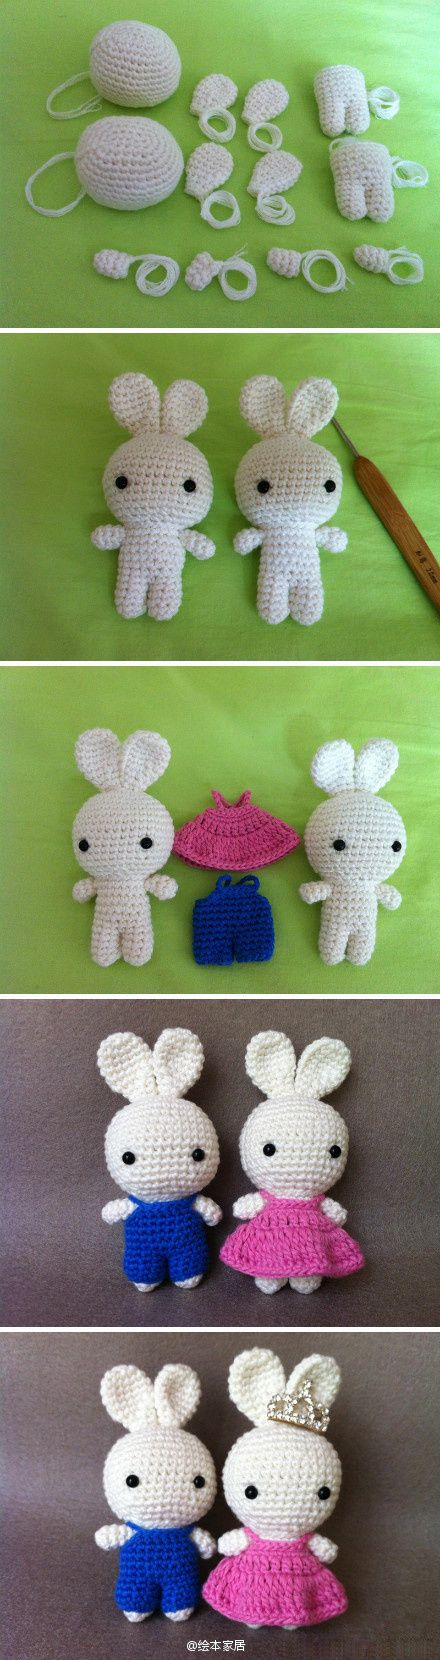 Amigurumi cute kawaii couple of rabbits Most inspiring pictures and photos - Chanzuiwa.com